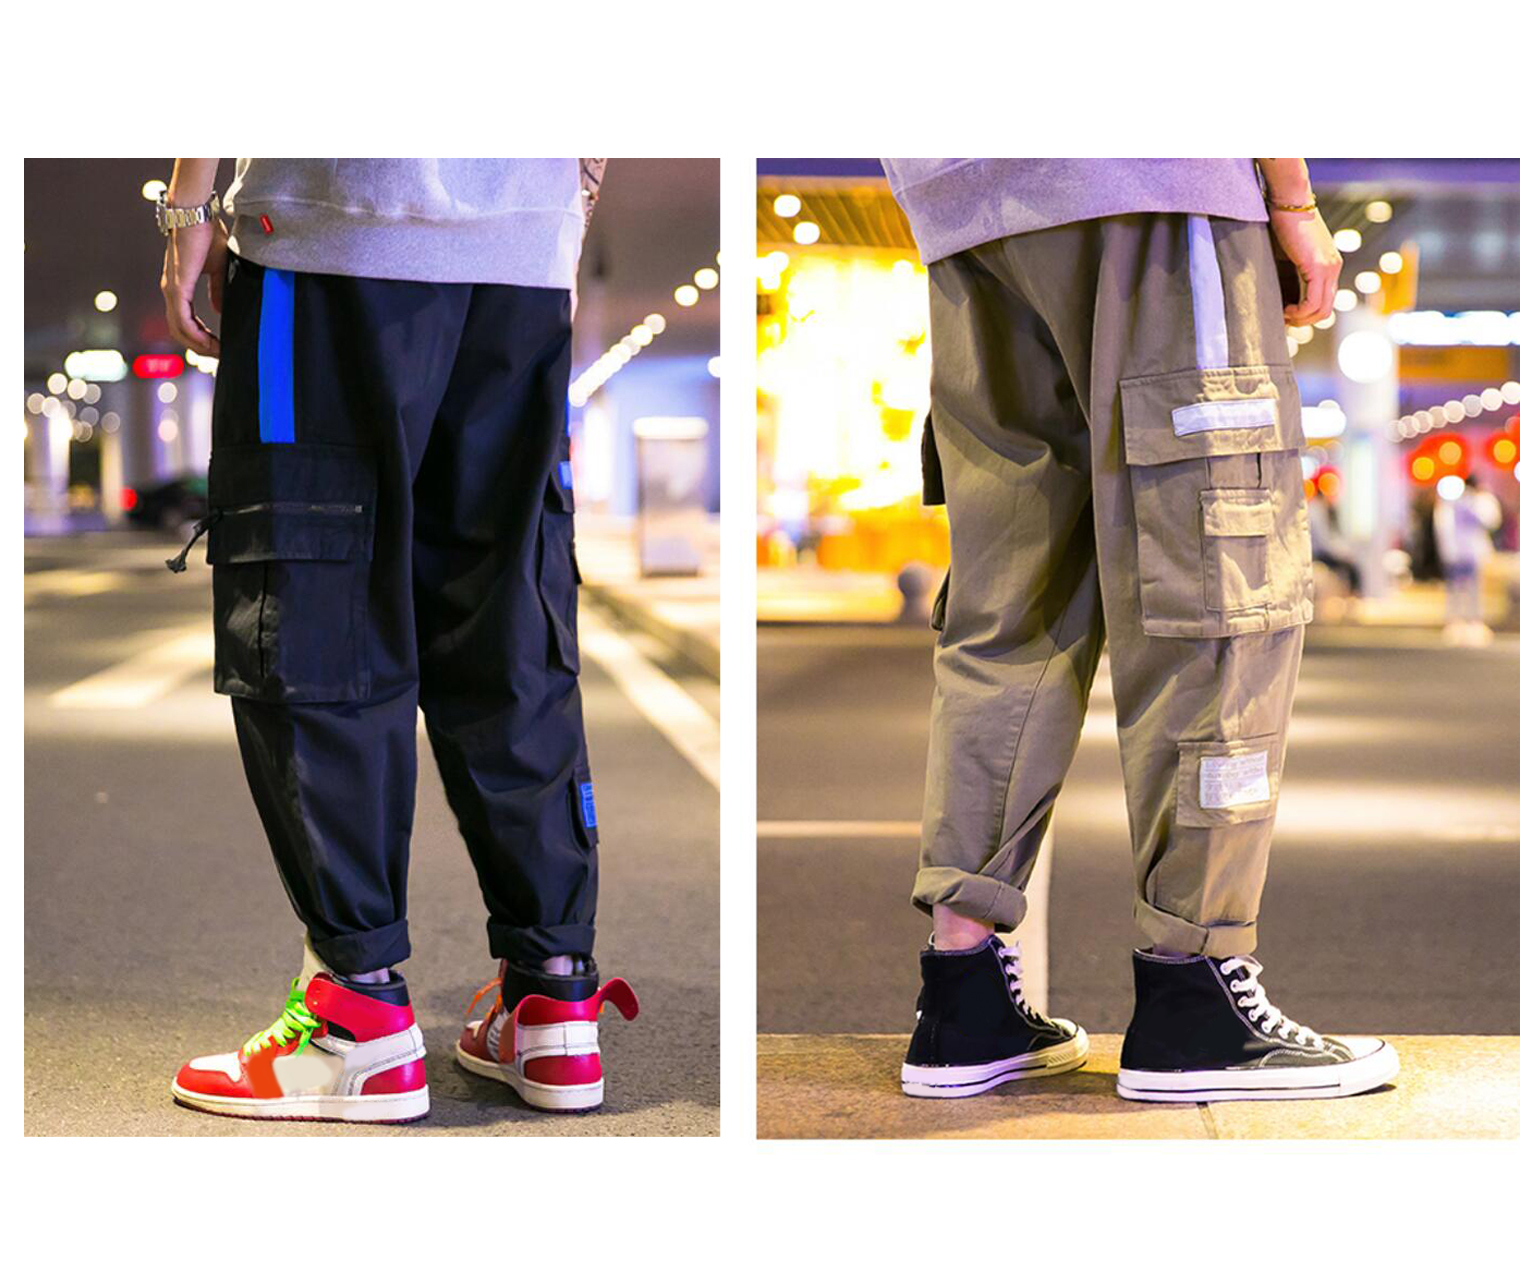 Men's Street Fashion Pants Casual Cargo Trousers Work Pants Pants For Adolescents And Young Boys, Straight Leg Loose Fit Pants